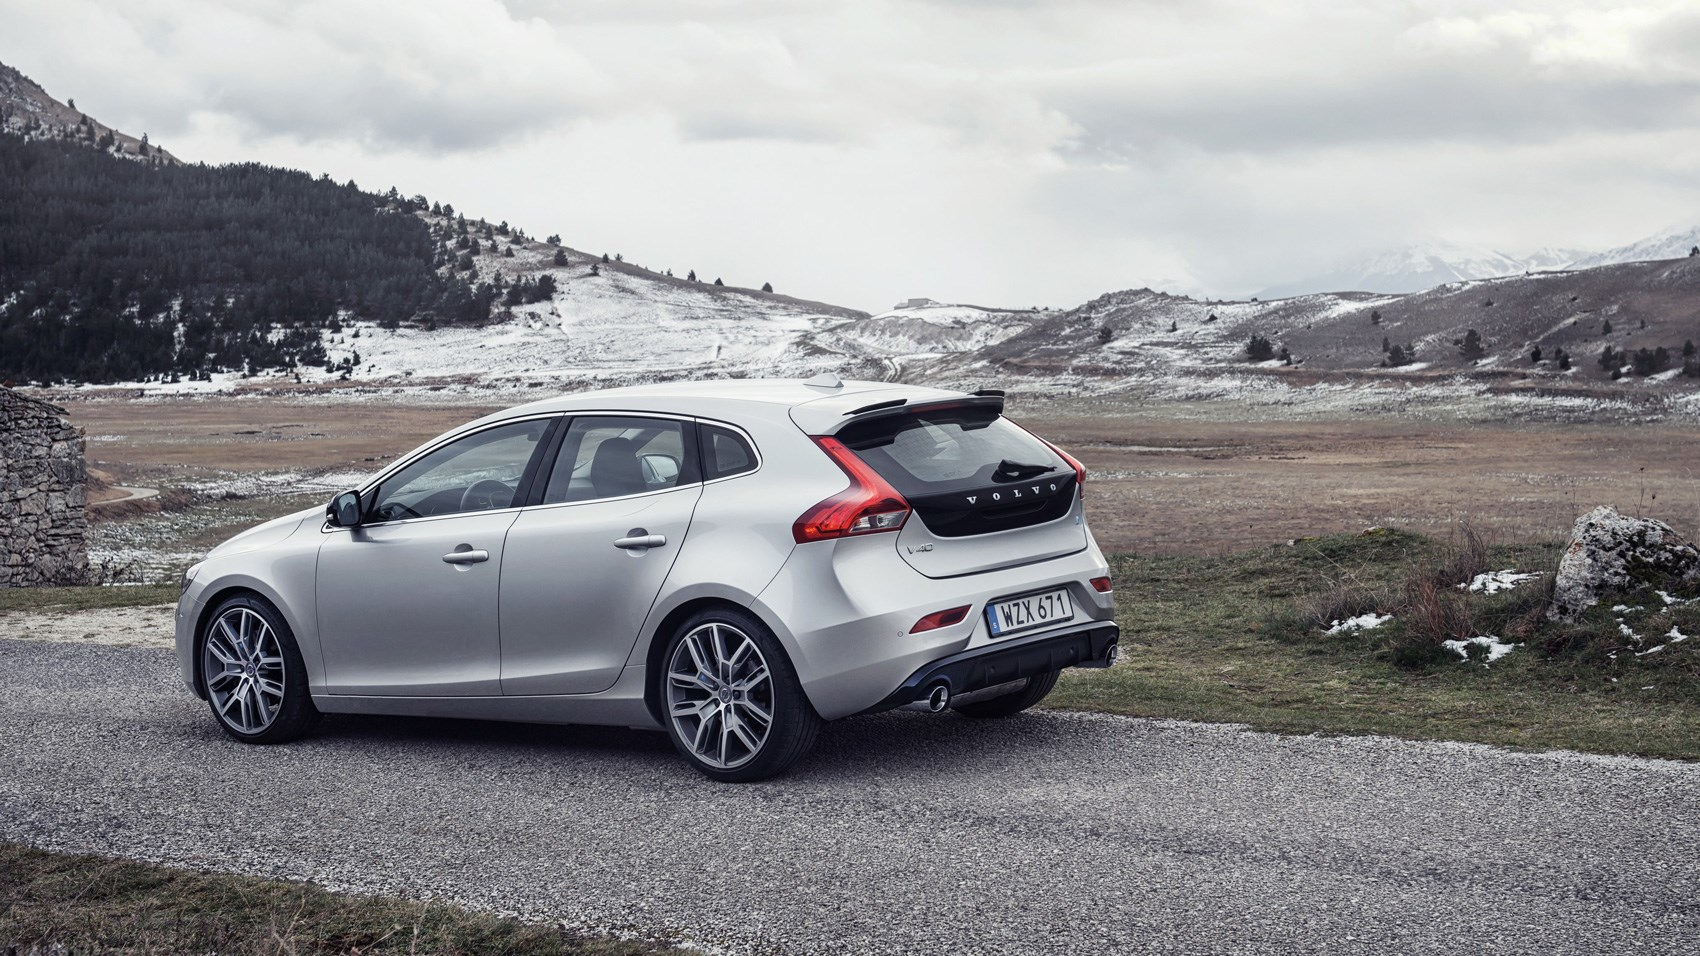 volvo v40 t5 r design pro polestar 2017 review by car magazine. Black Bedroom Furniture Sets. Home Design Ideas